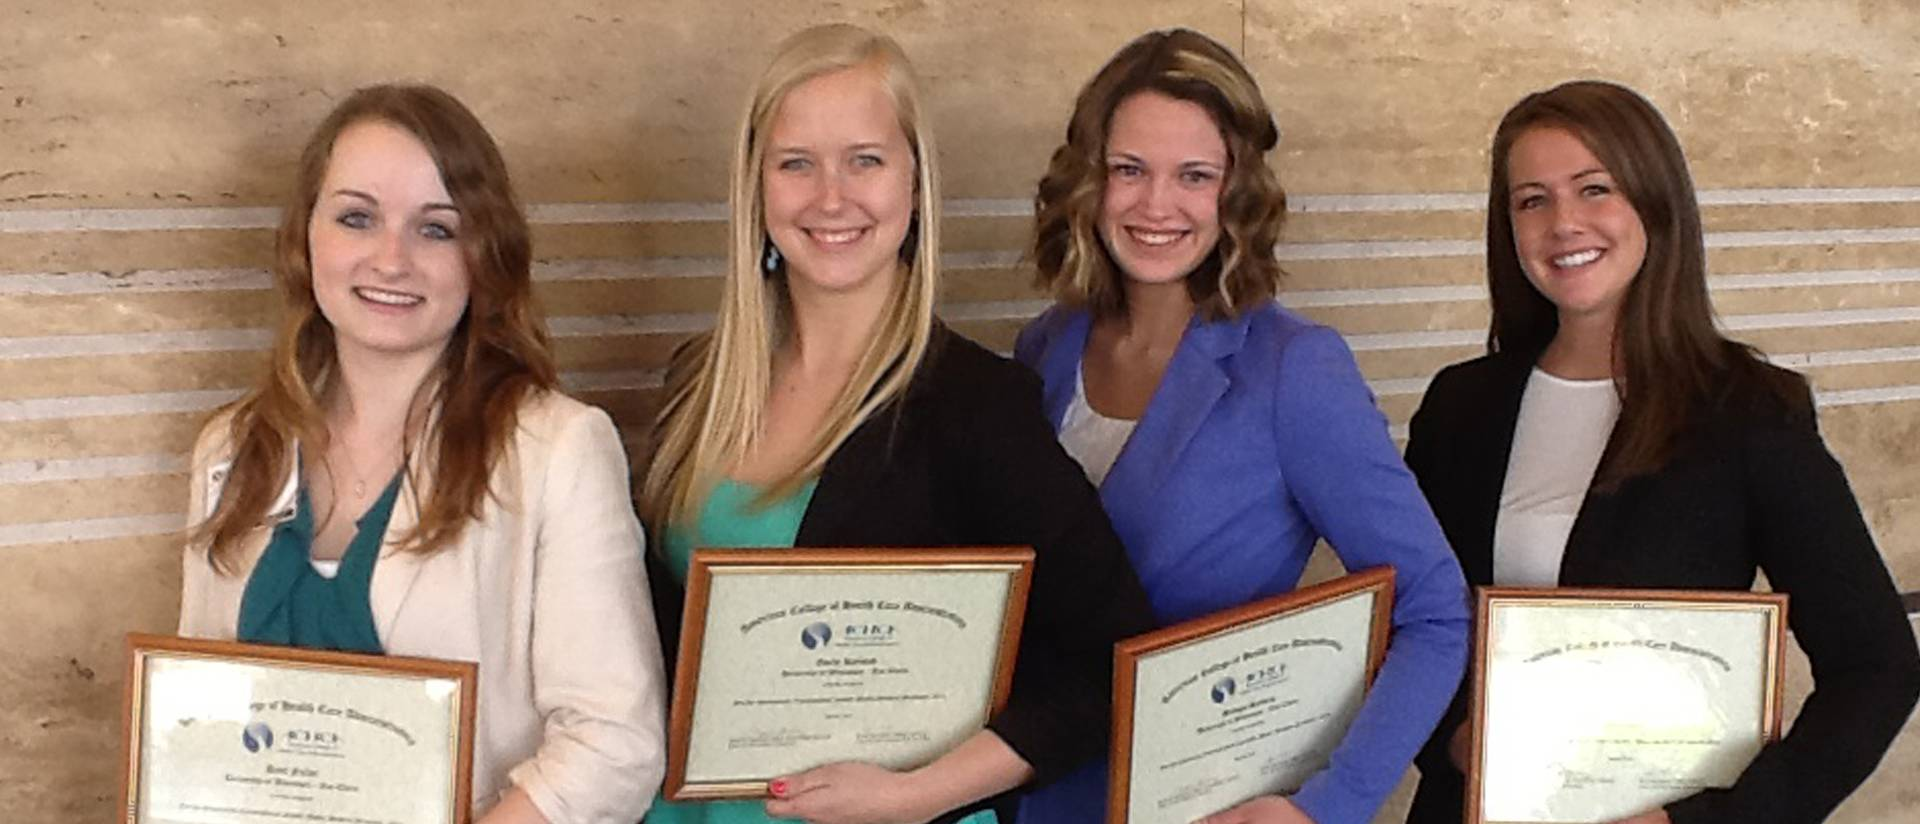 UW-Eau Claire HCAD students (from l to r) Ariel Fuller, Emily Kjelstad, Bridget Staberg, and Lori Mahan are recognized for their research posters at the 48th Annual ACHCA Convocation and Exposition and Student Poster Session in Las Vegas, NV, April 5–9, 2